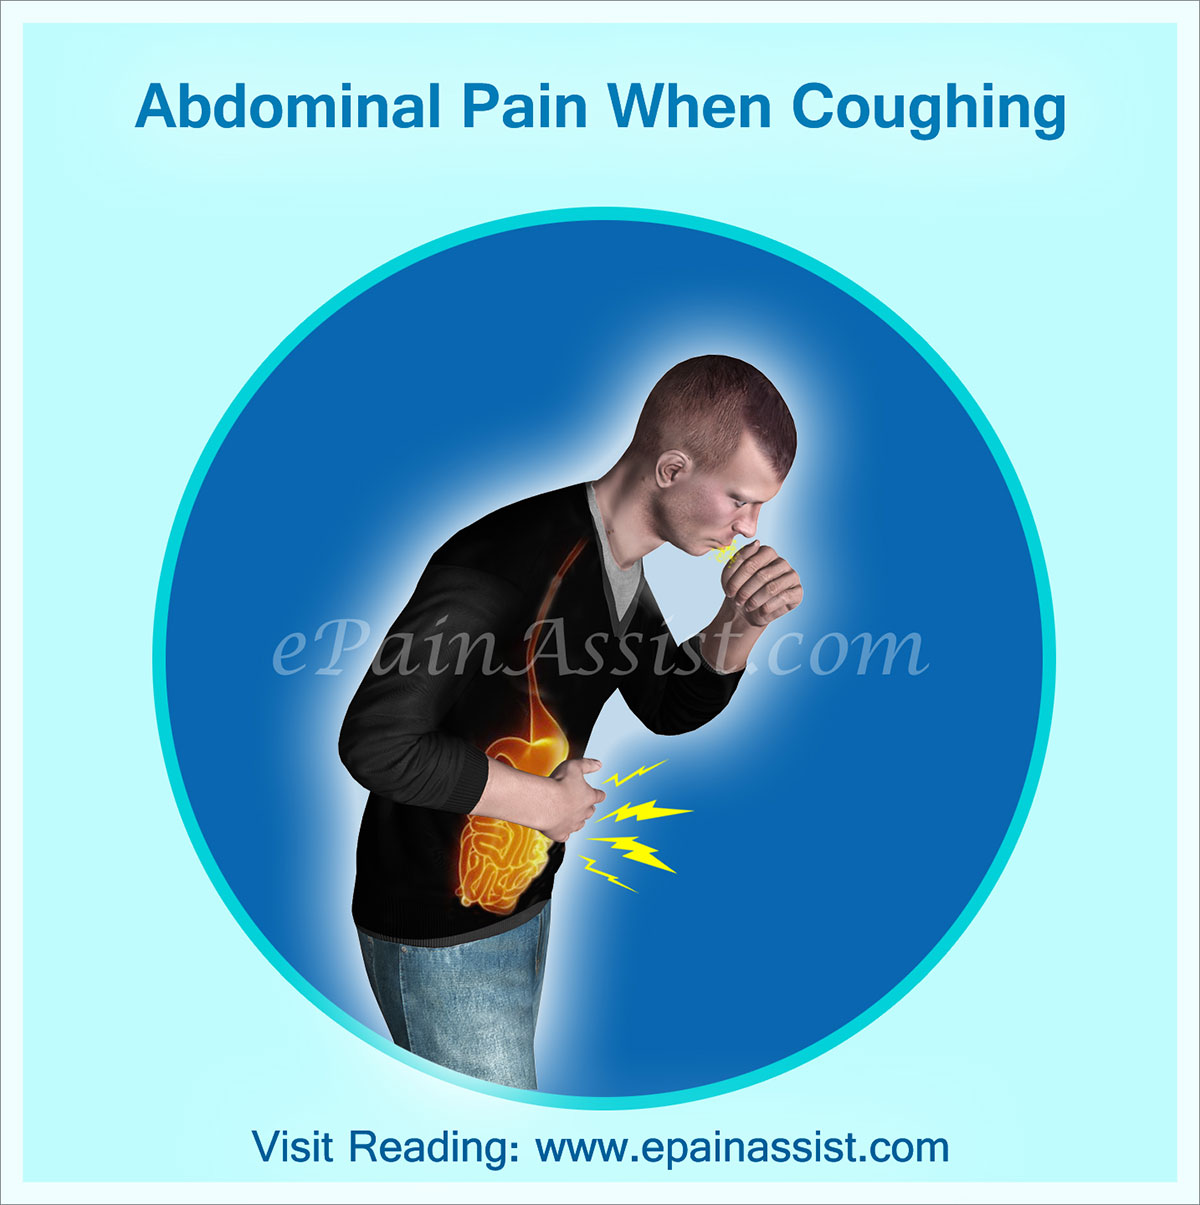 Sharp pain in lower right abdomen after sneezing